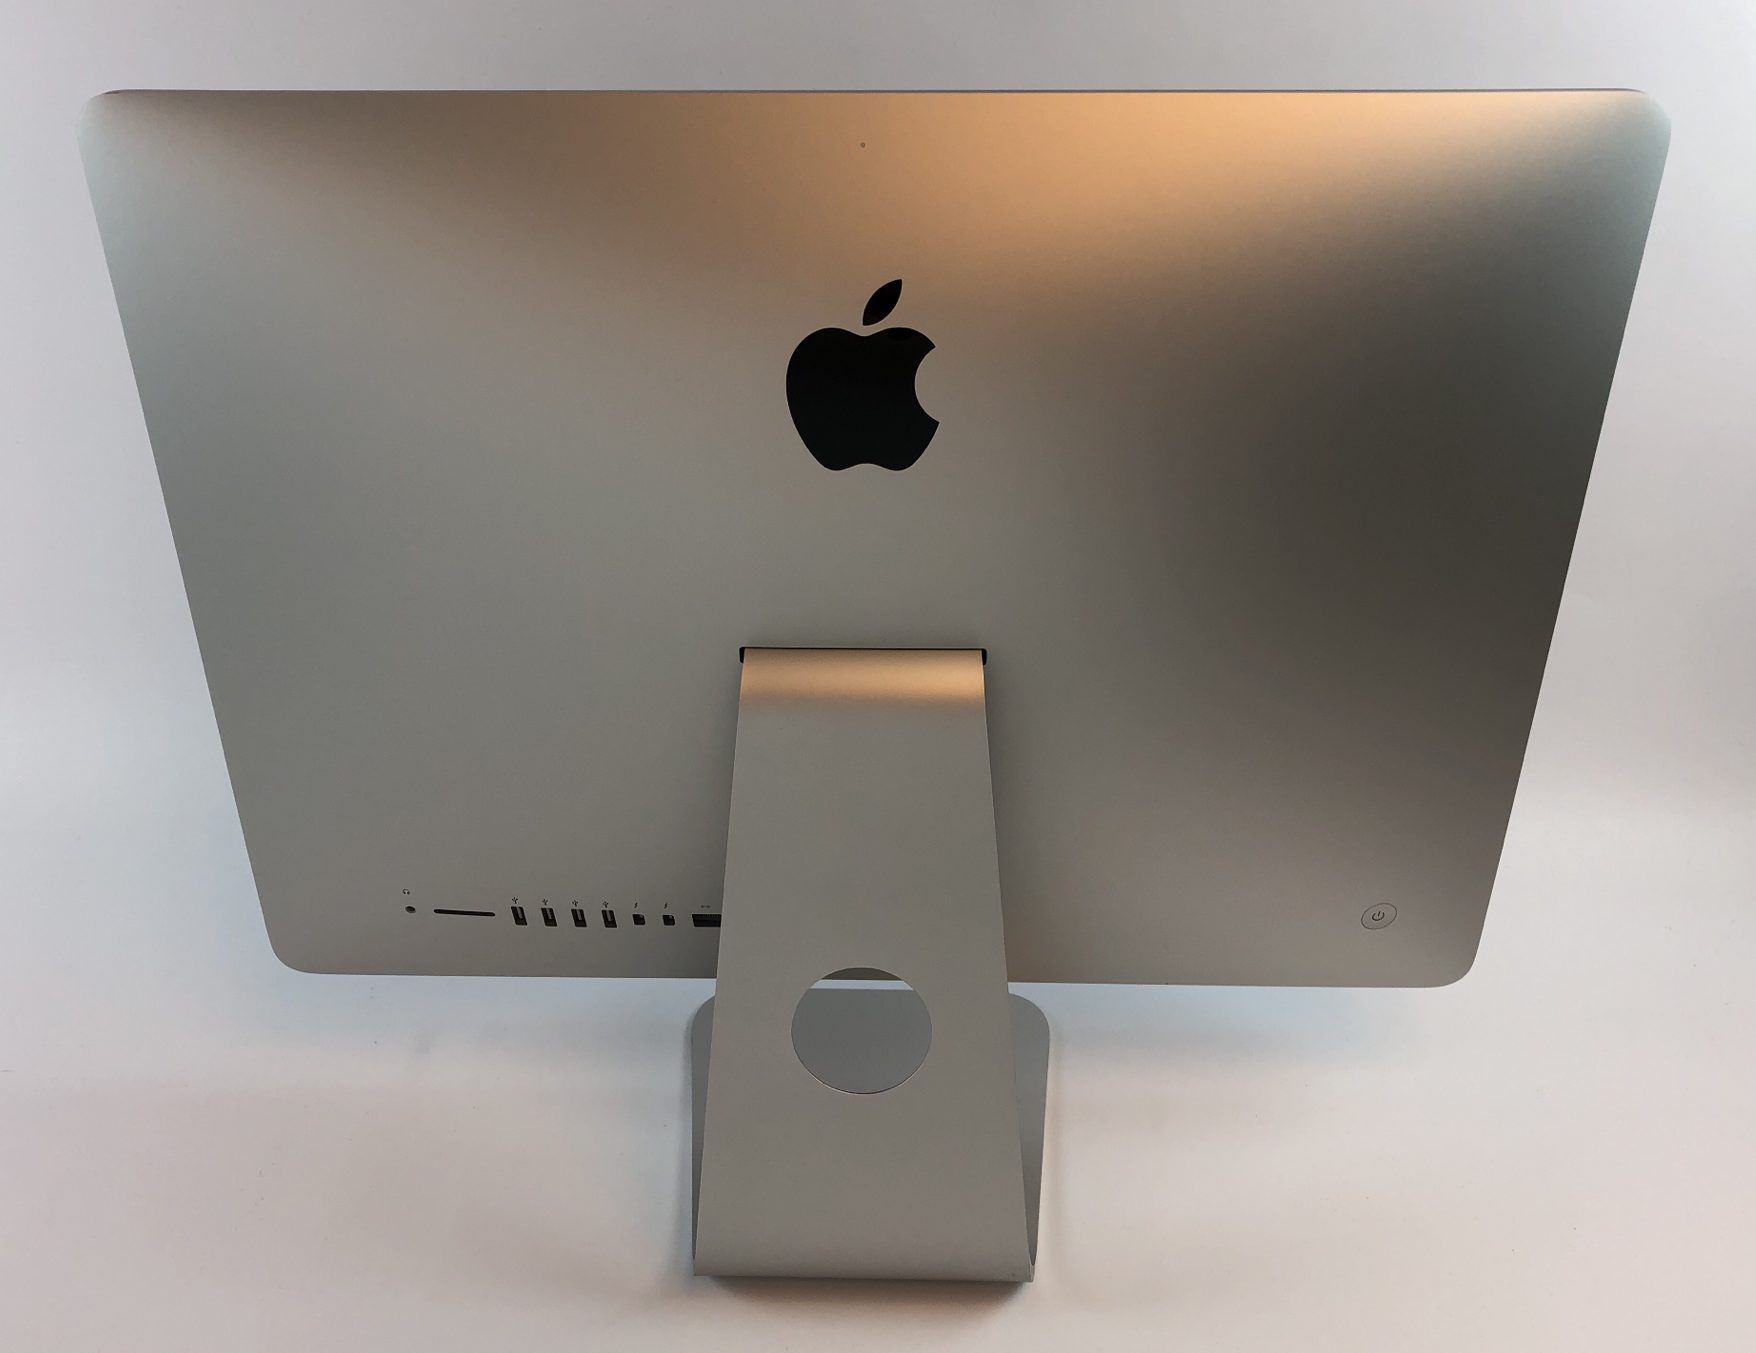 "iMac 21.5"" Late 2015 (Intel Core i5 1.6 GHz 8 GB RAM 1 TB HDD), Intel Core i5 1.6 GHz, 8 GB RAM, 1 TB HDD, bild 2"